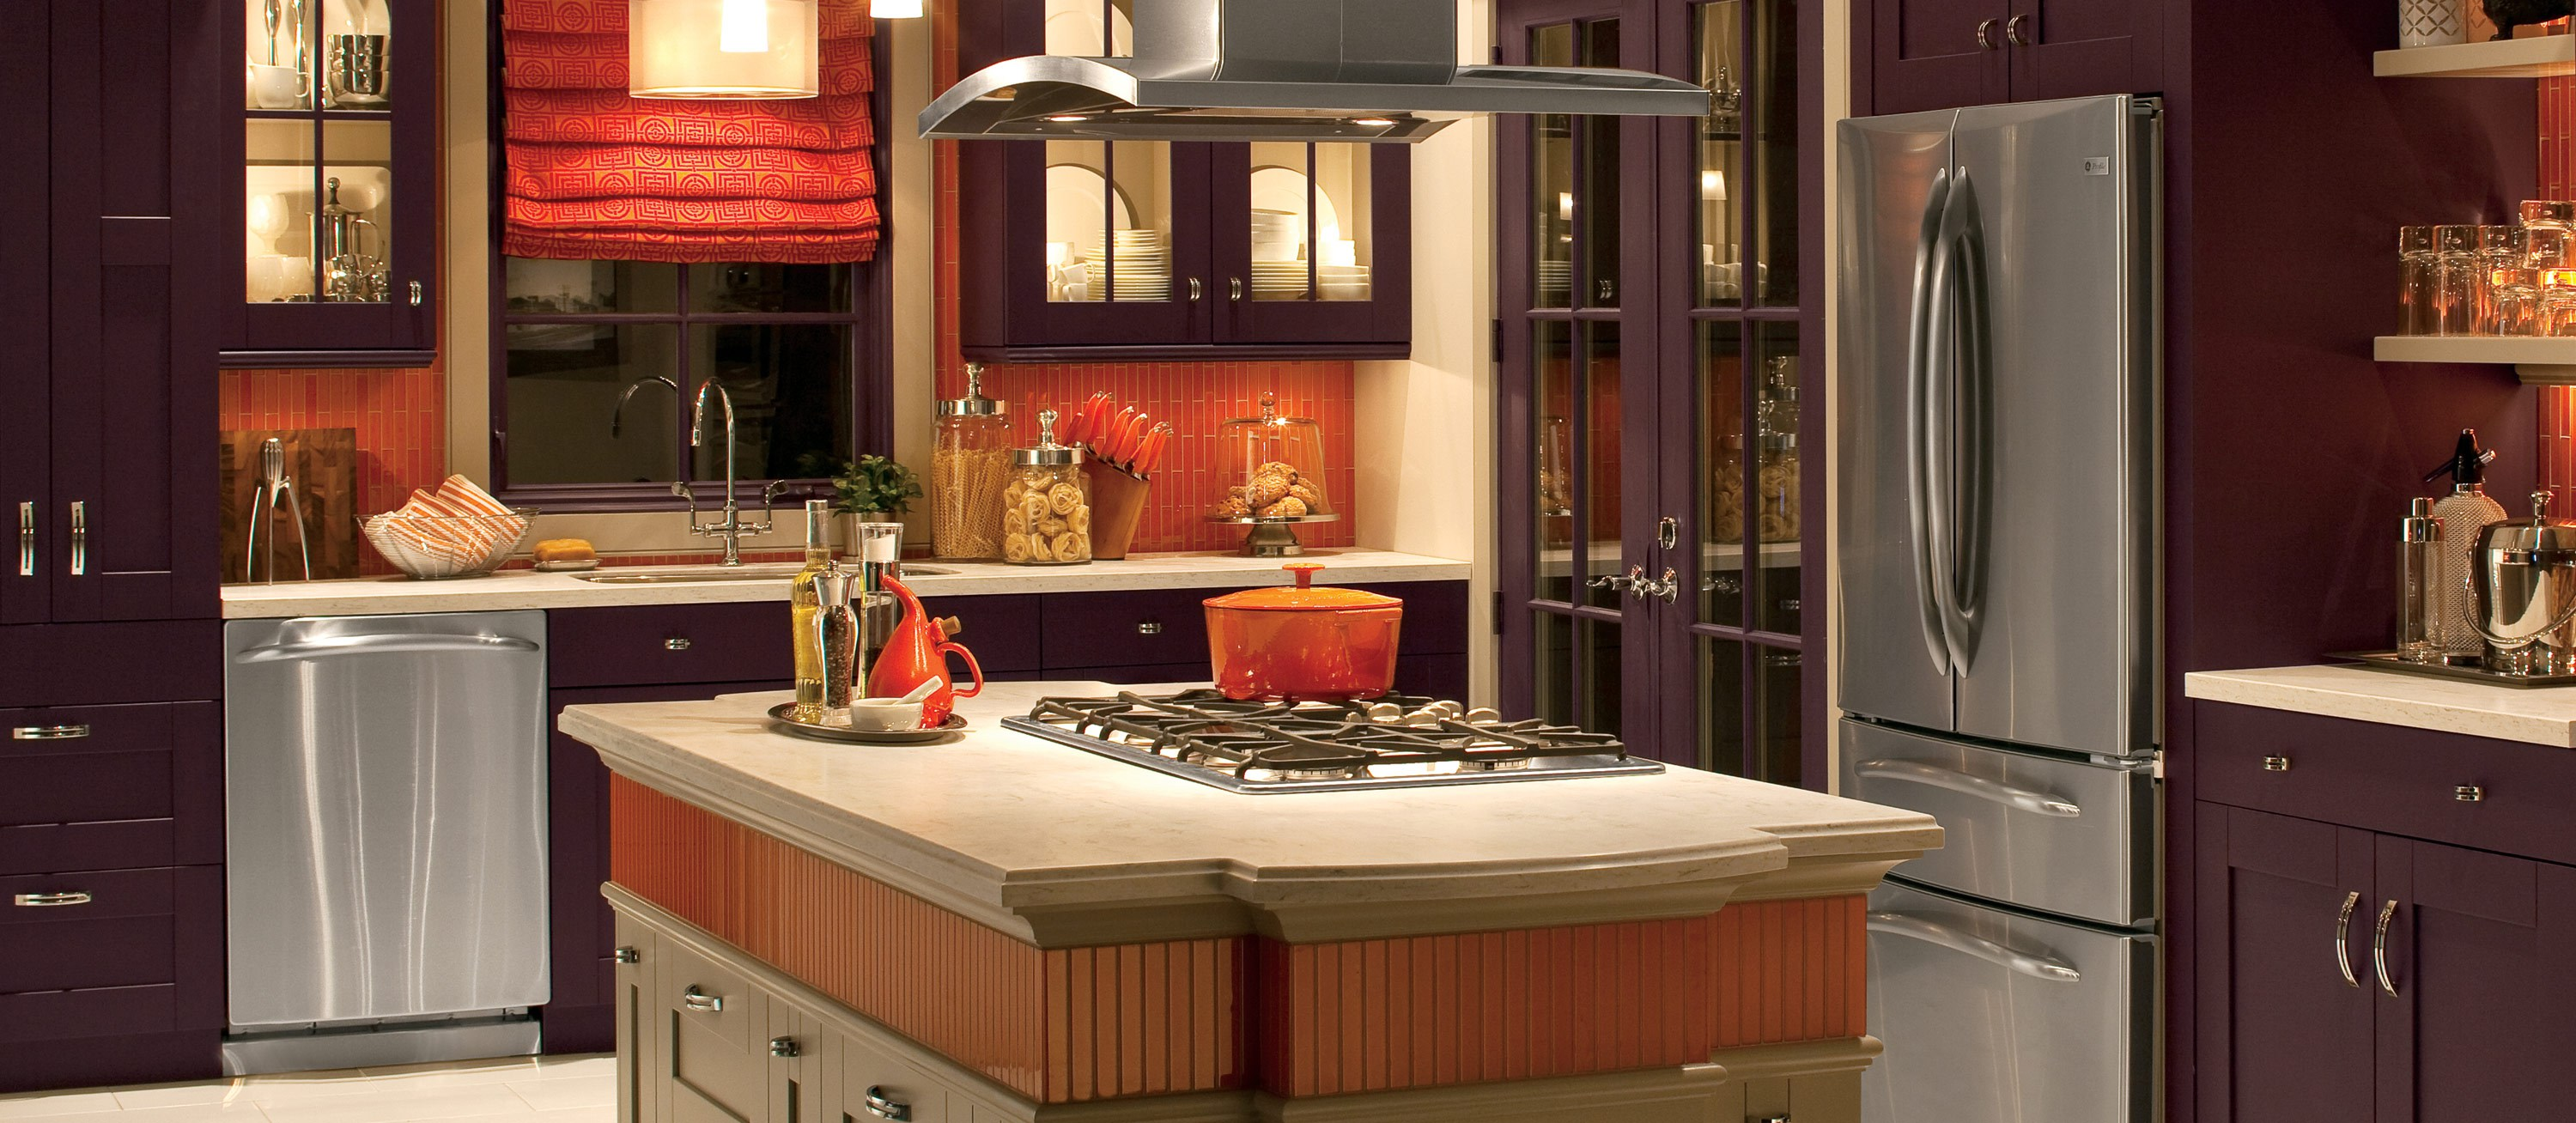 charming purple Thomasville Cabinets with white countertop plus sink near the window for kitchen decoration ideas